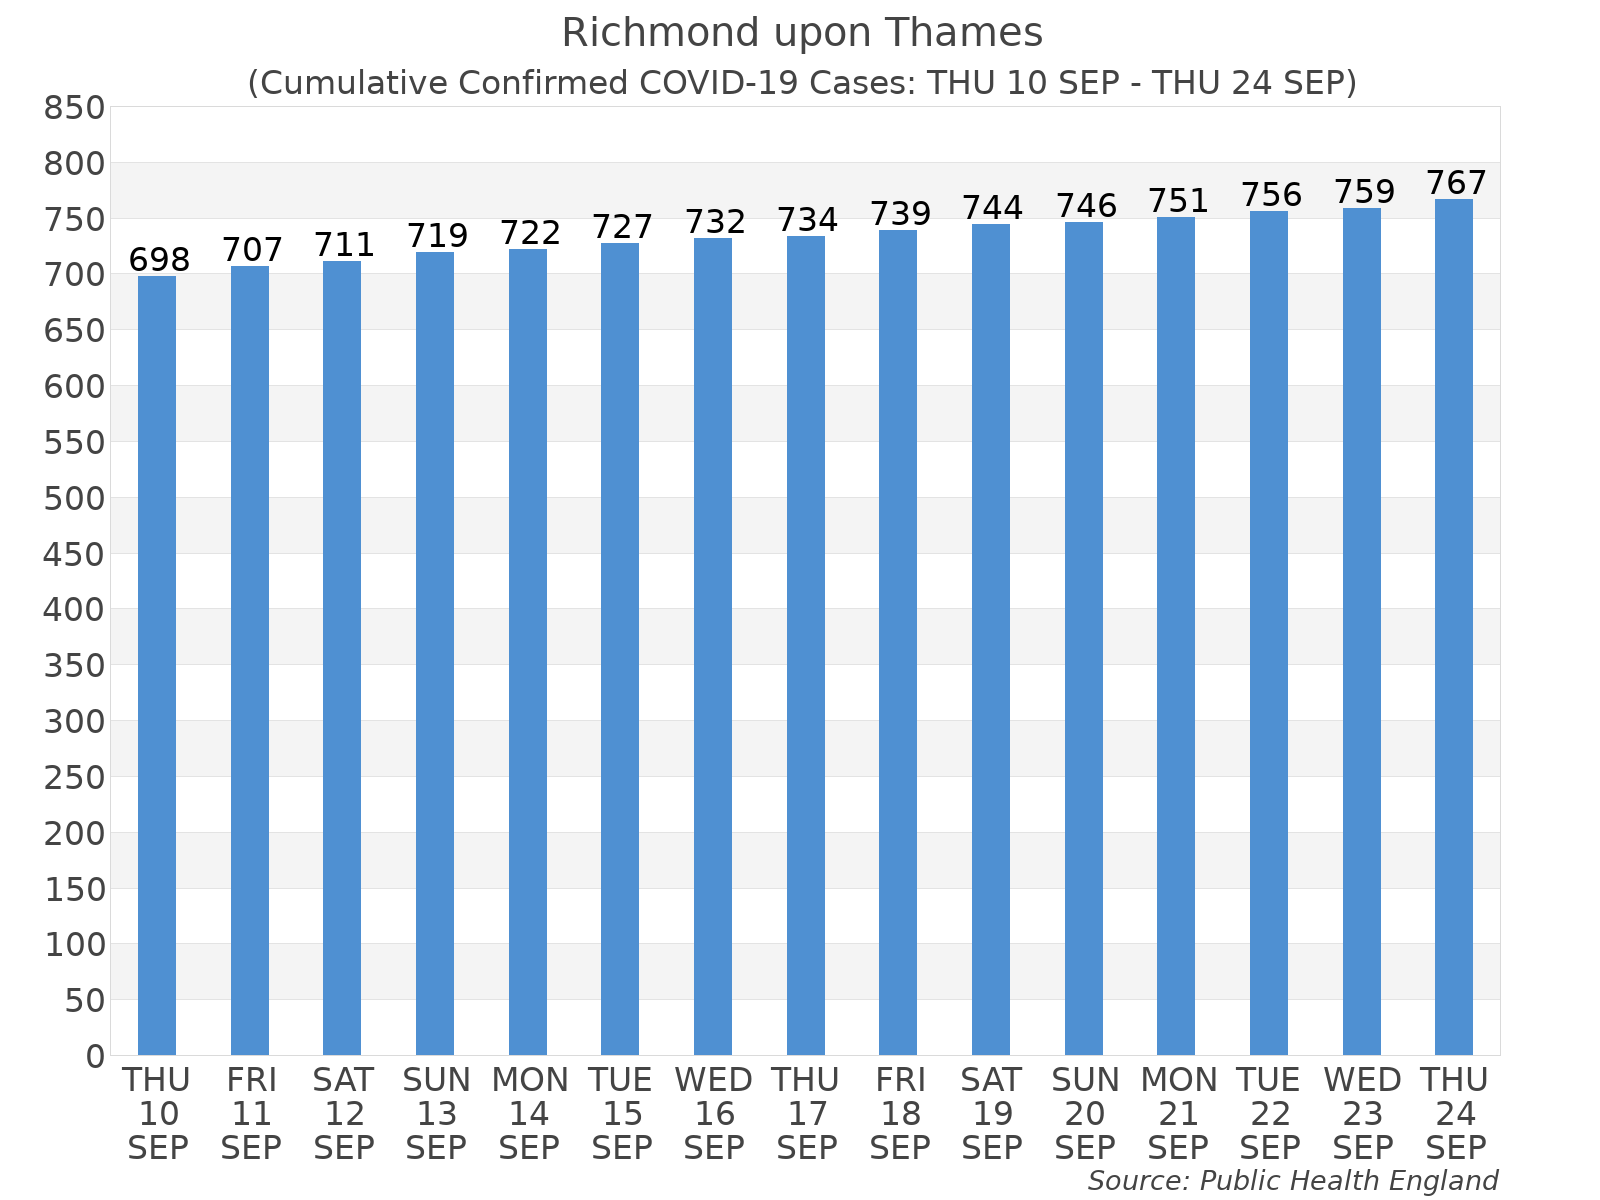 Graph tracking the number of confirmed coronavirus (COVID-19) cases where the patient lives within the Richmond upon Thames Upper Tier Local Authority Area.